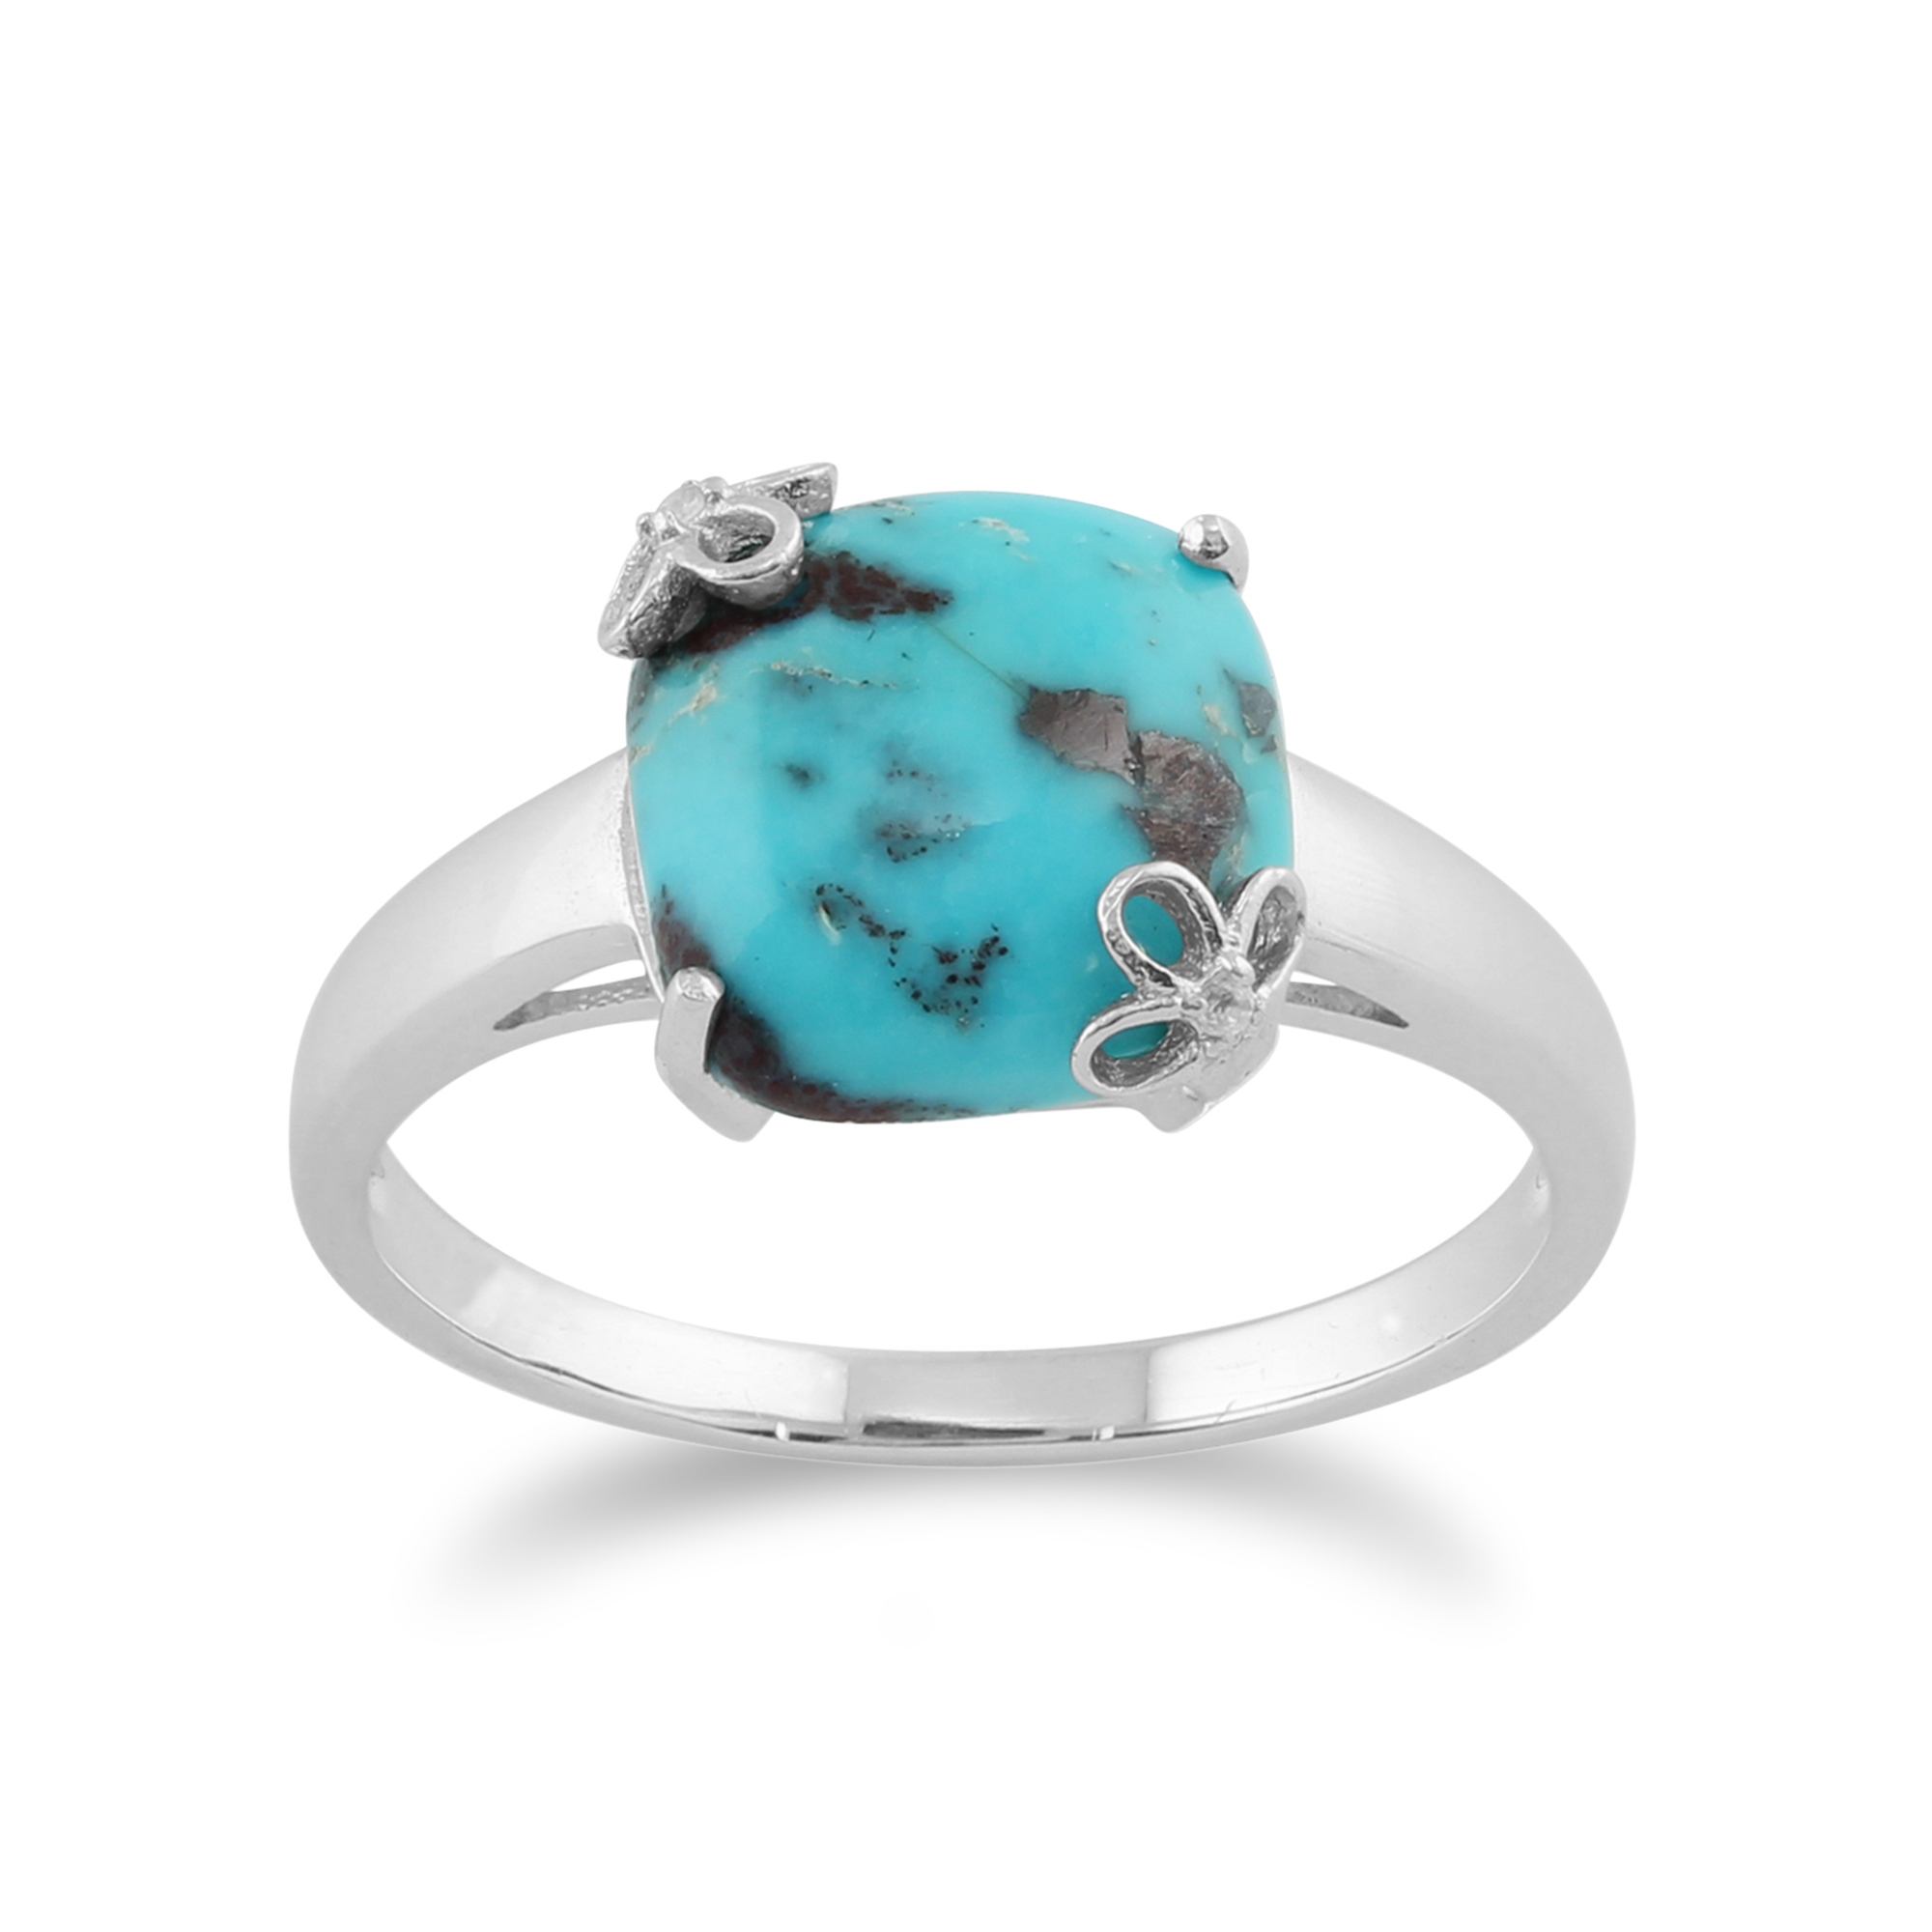 Gemondo 925 Sterling Silver 3ct Turquoise & White Topaz Ring